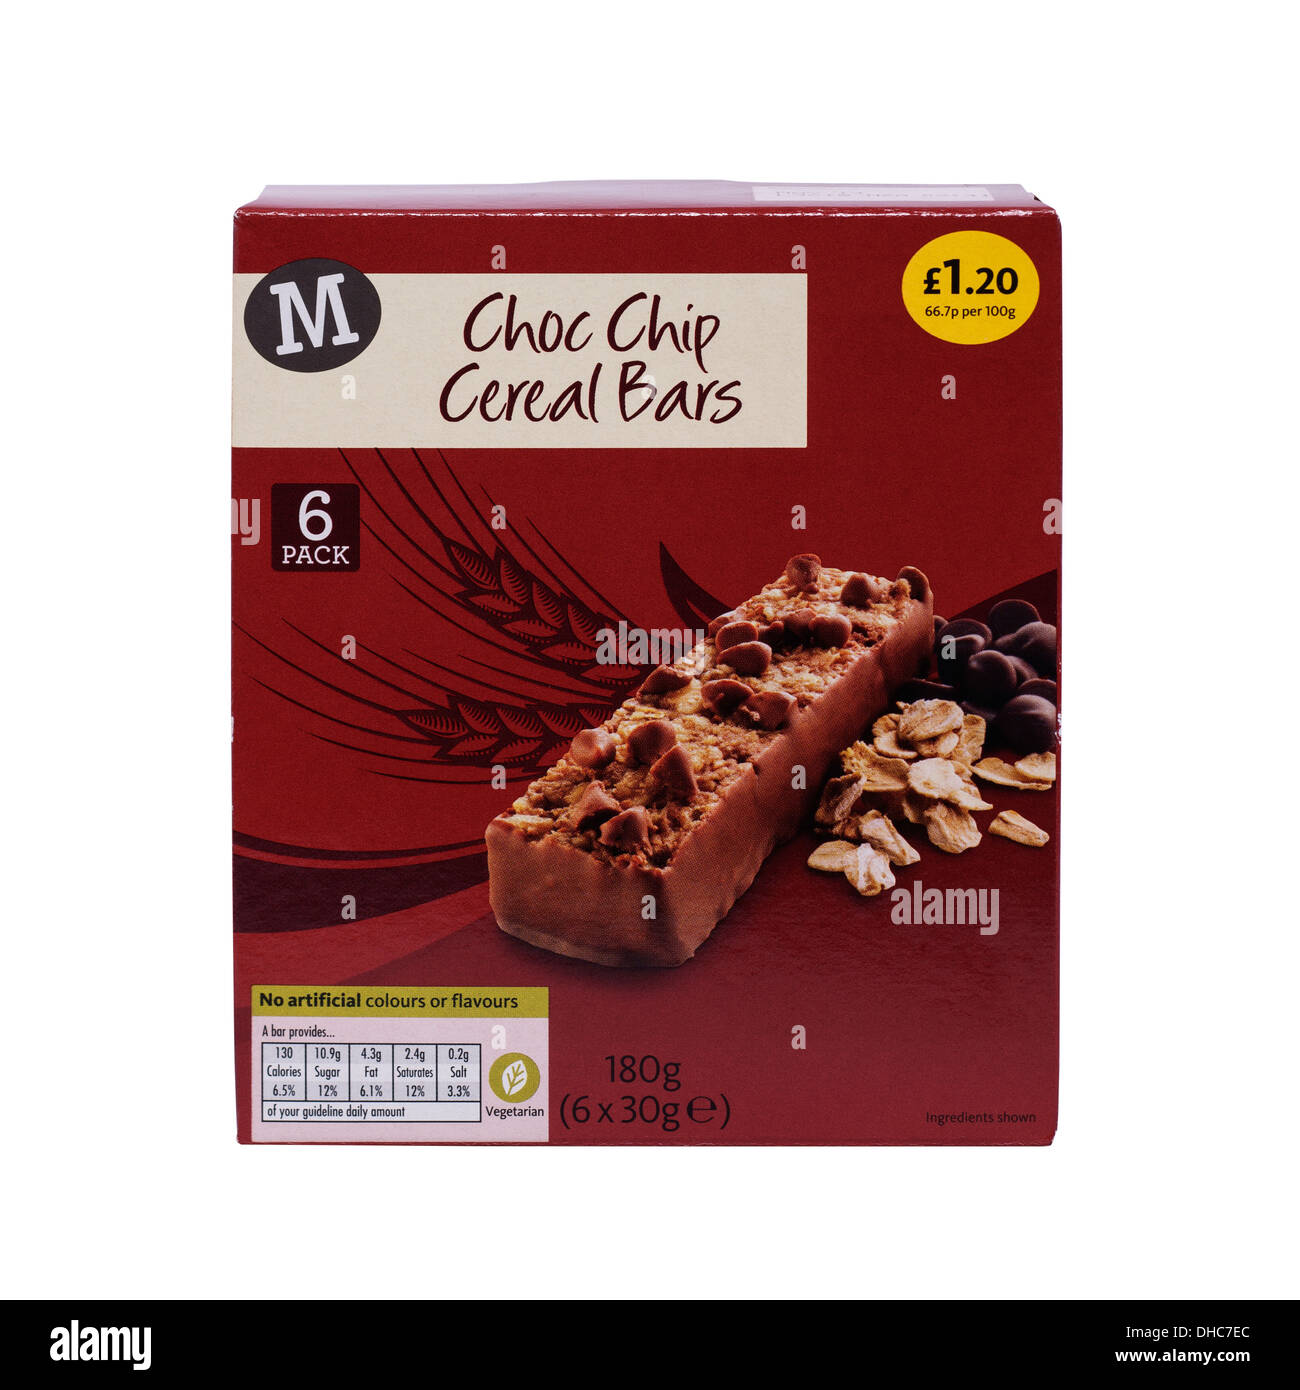 A multipack box of Morrisons choc chip cereal bars on a white background - Stock Image